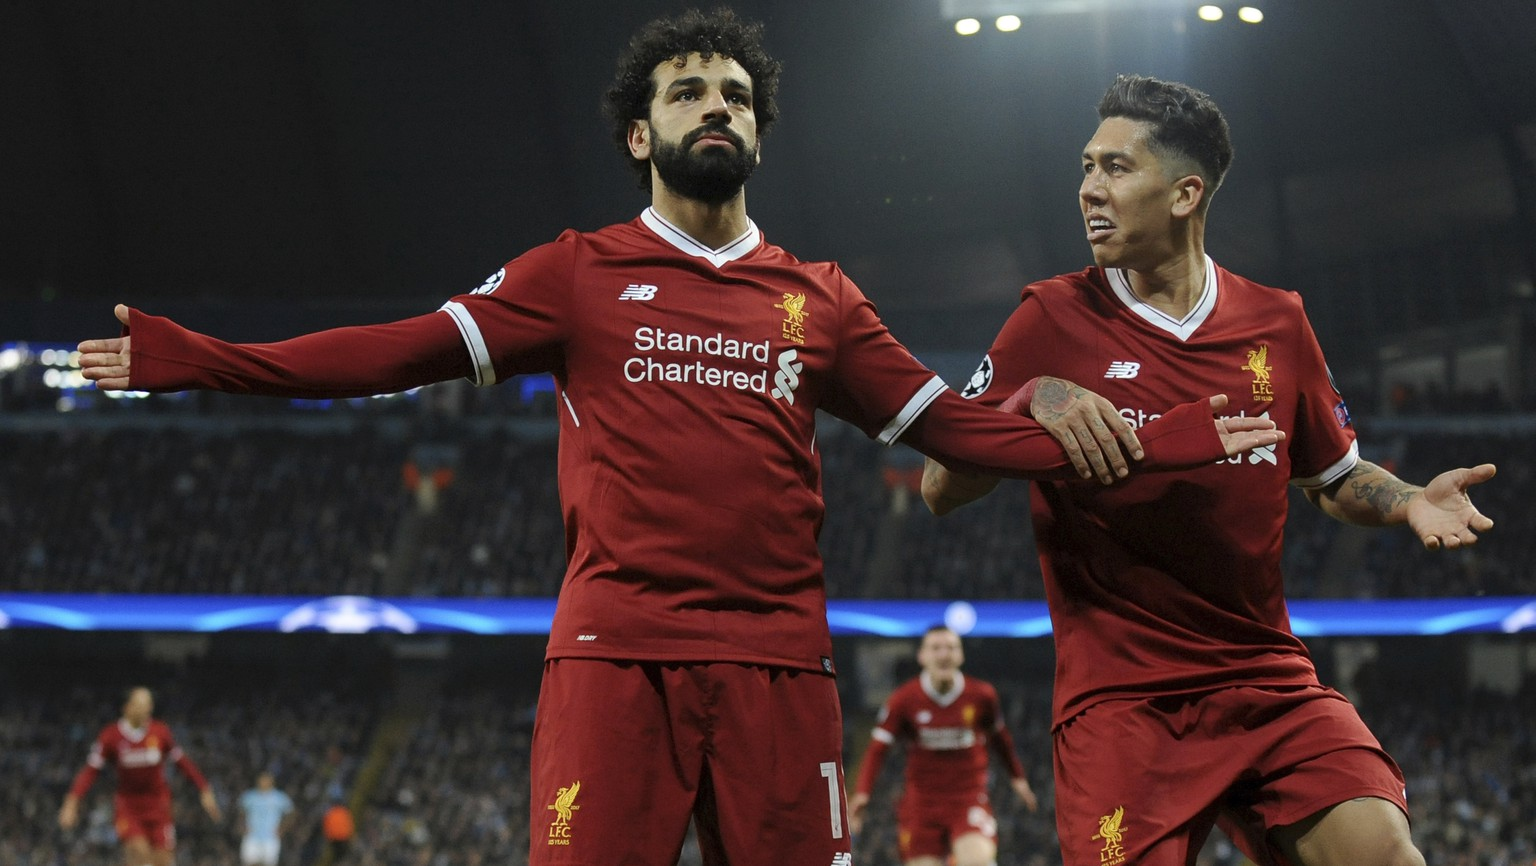 Liverpool's Mohamed Salah, left, celebrates scoring his side's first goal with Liverpool's Roberto Firmino during the Champions League quarterfinal second leg soccer match between Manchester City and Liverpool at Etihad stadium in Manchester, England, Tuesday, April 10, 2018. (AP Photo/Rui Vieira)